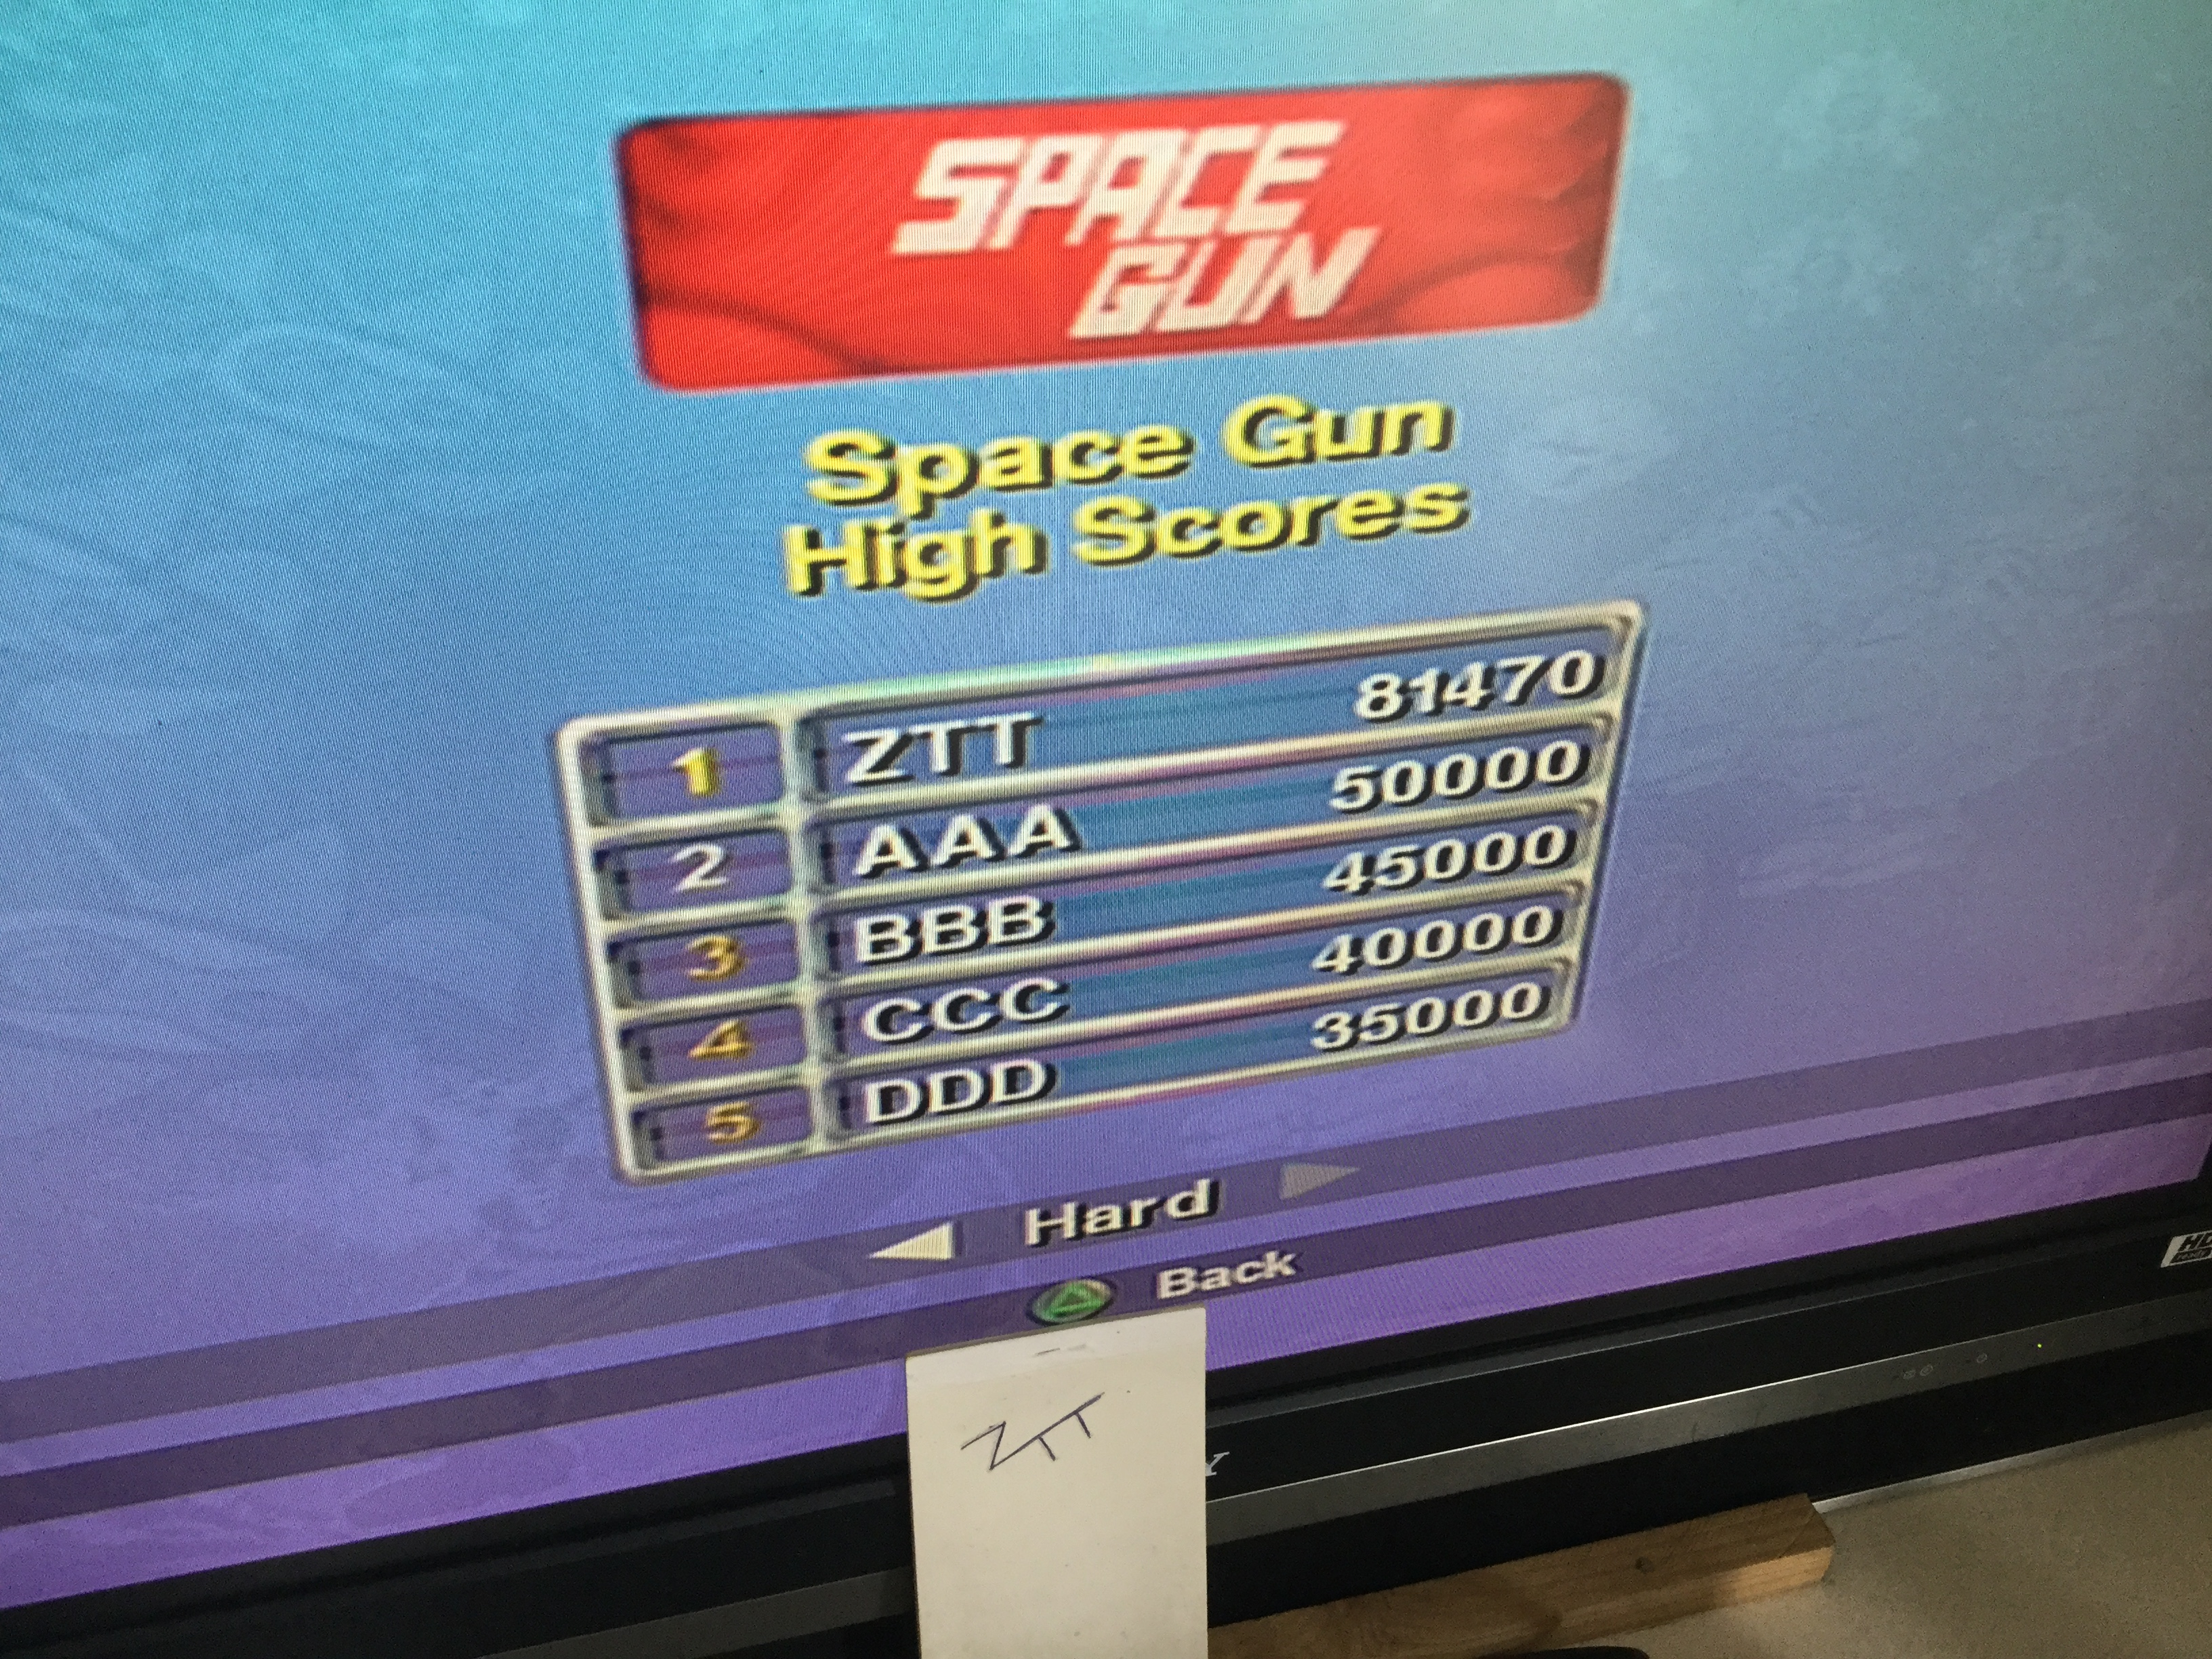 Frankie: Taito Legends: Space Gun [Hard] (Playstation 2) 81,470 points on 2018-03-31 06:03:38